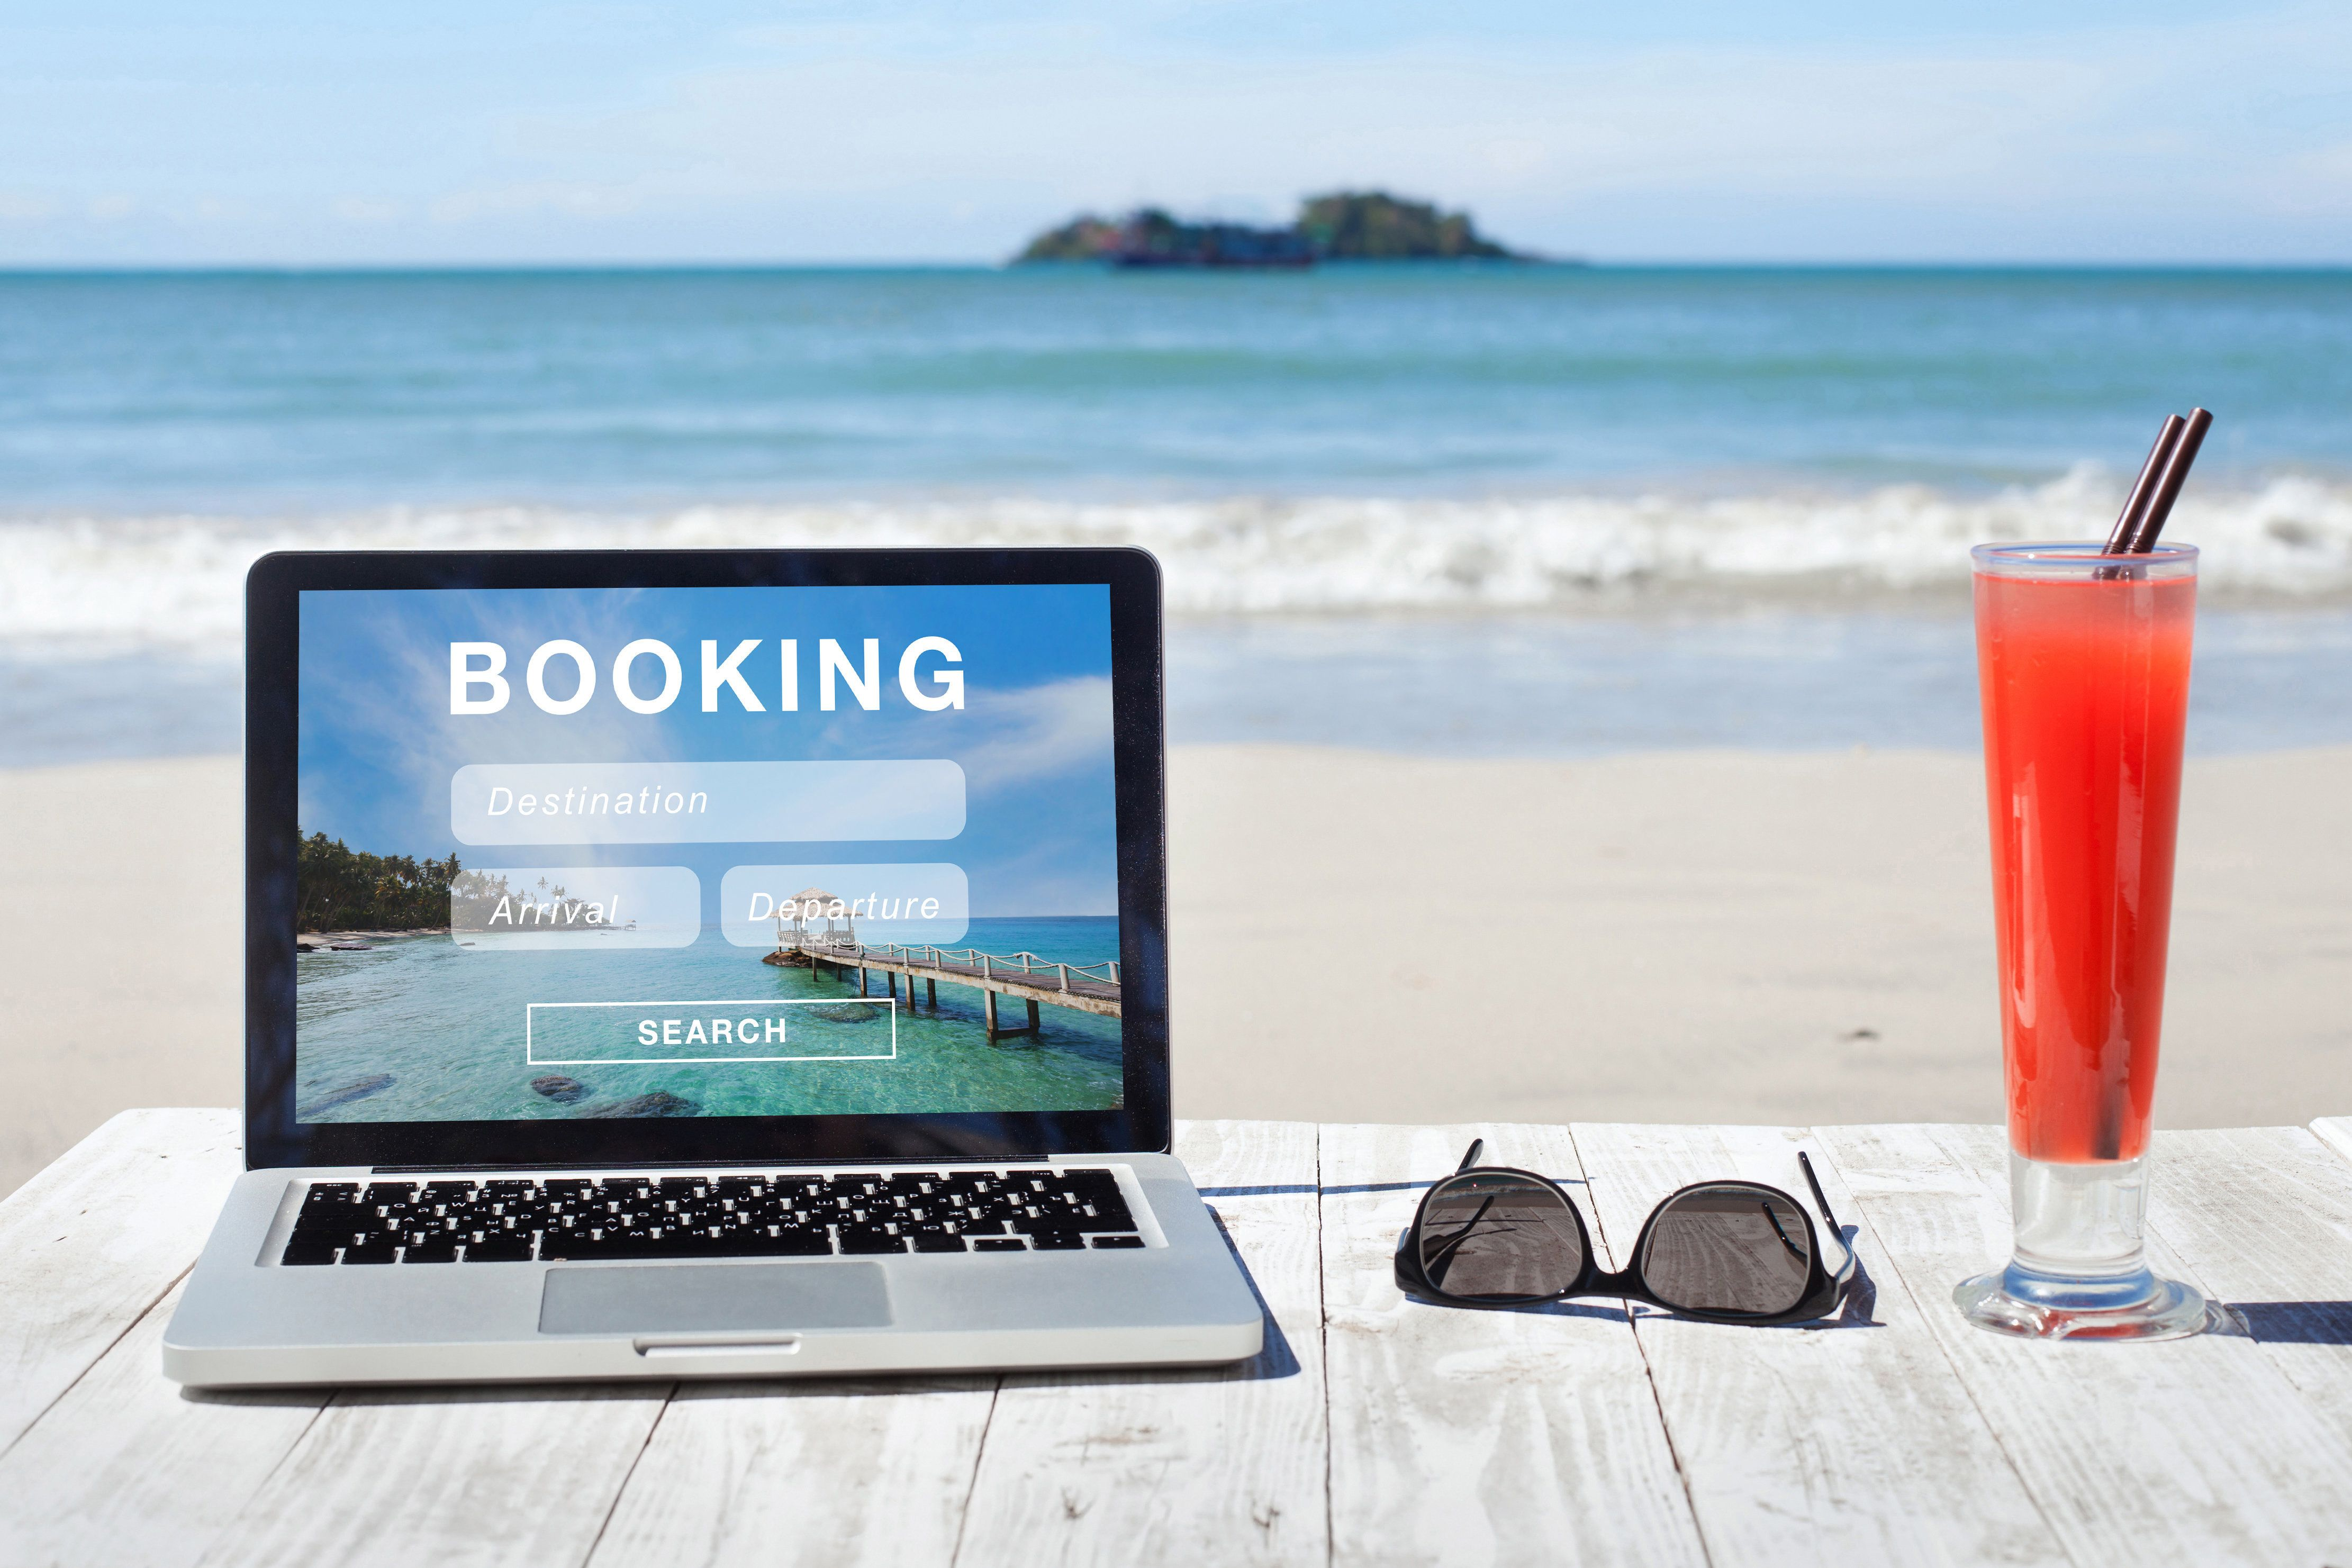 Hotel Booking Websites Have To Change The Way They Work From September – What You Need To